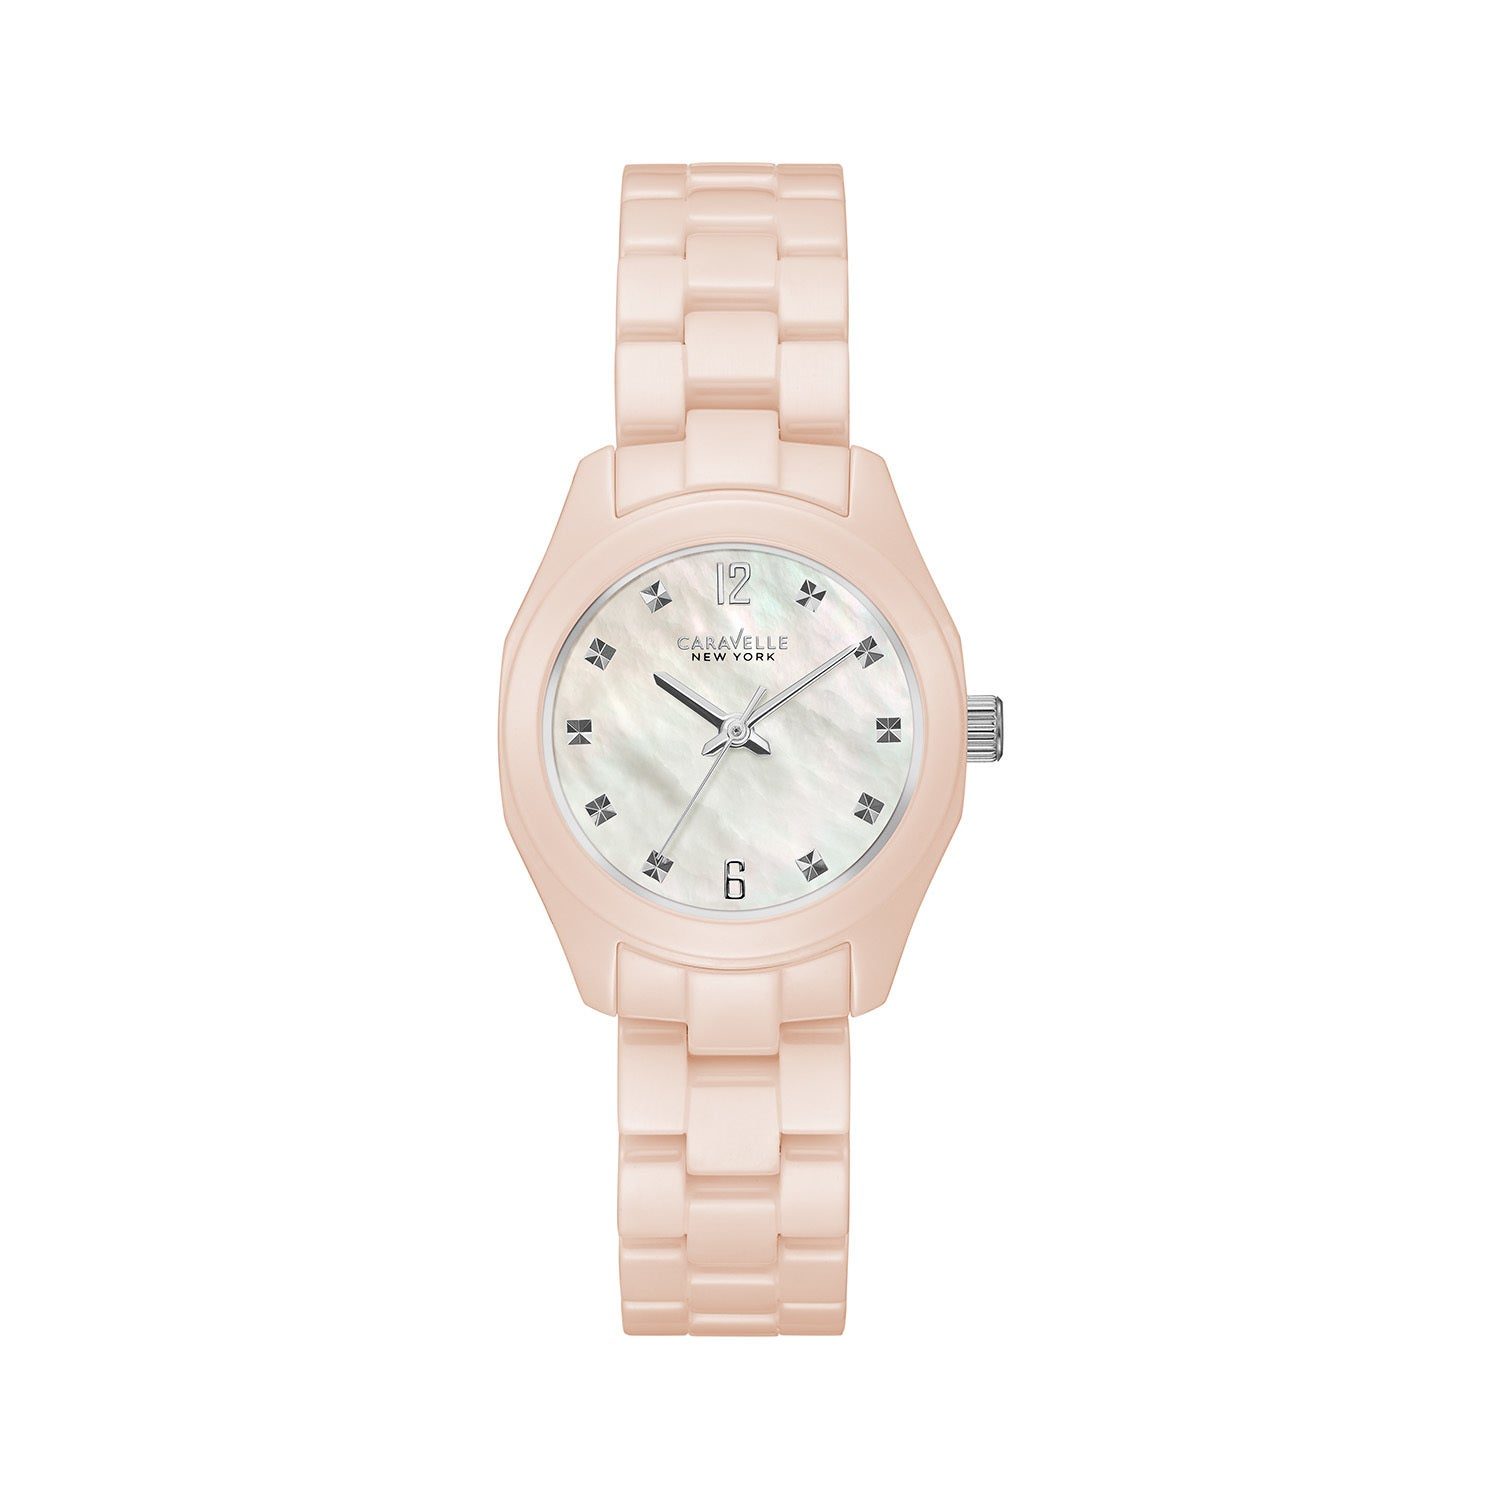 BULOVA Caravelle NY Women's 45L165 Pink Ceramic MOP Cryst...